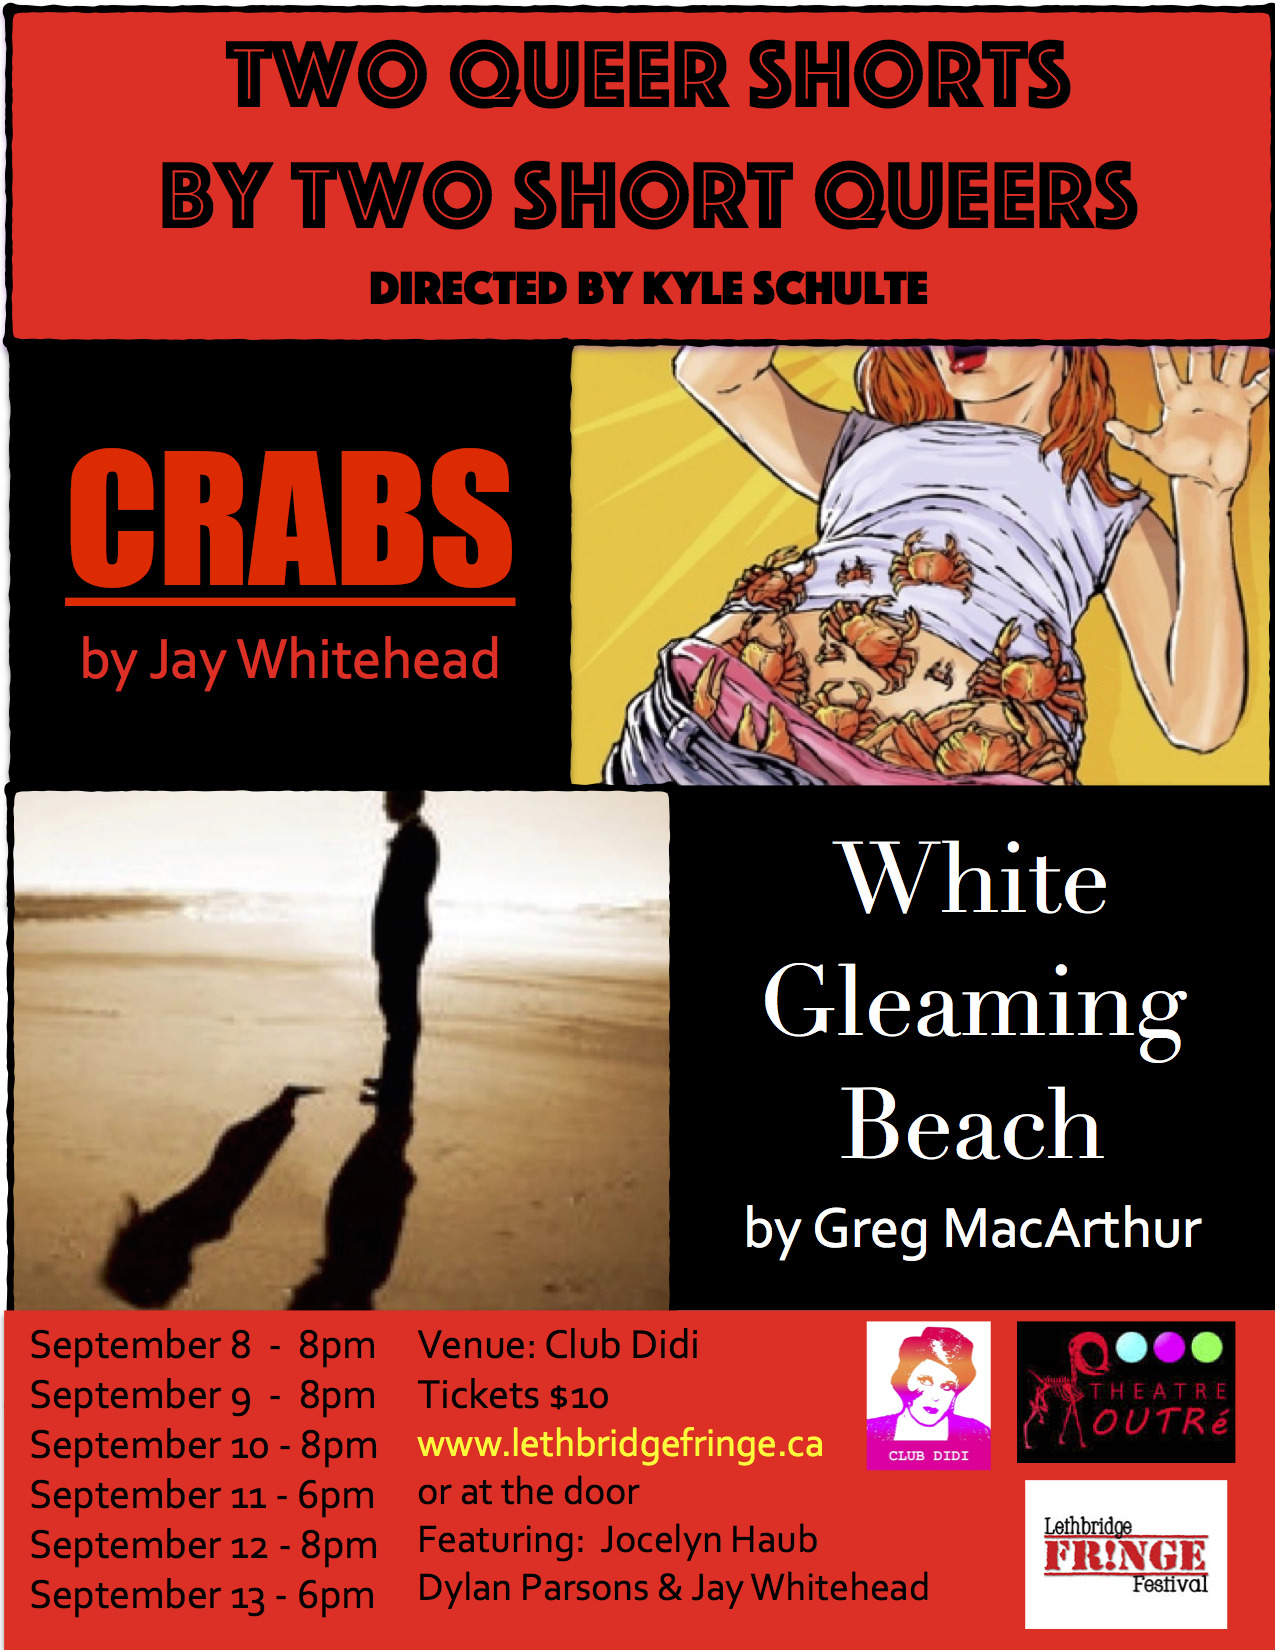 CRABS by Jay Whitehead